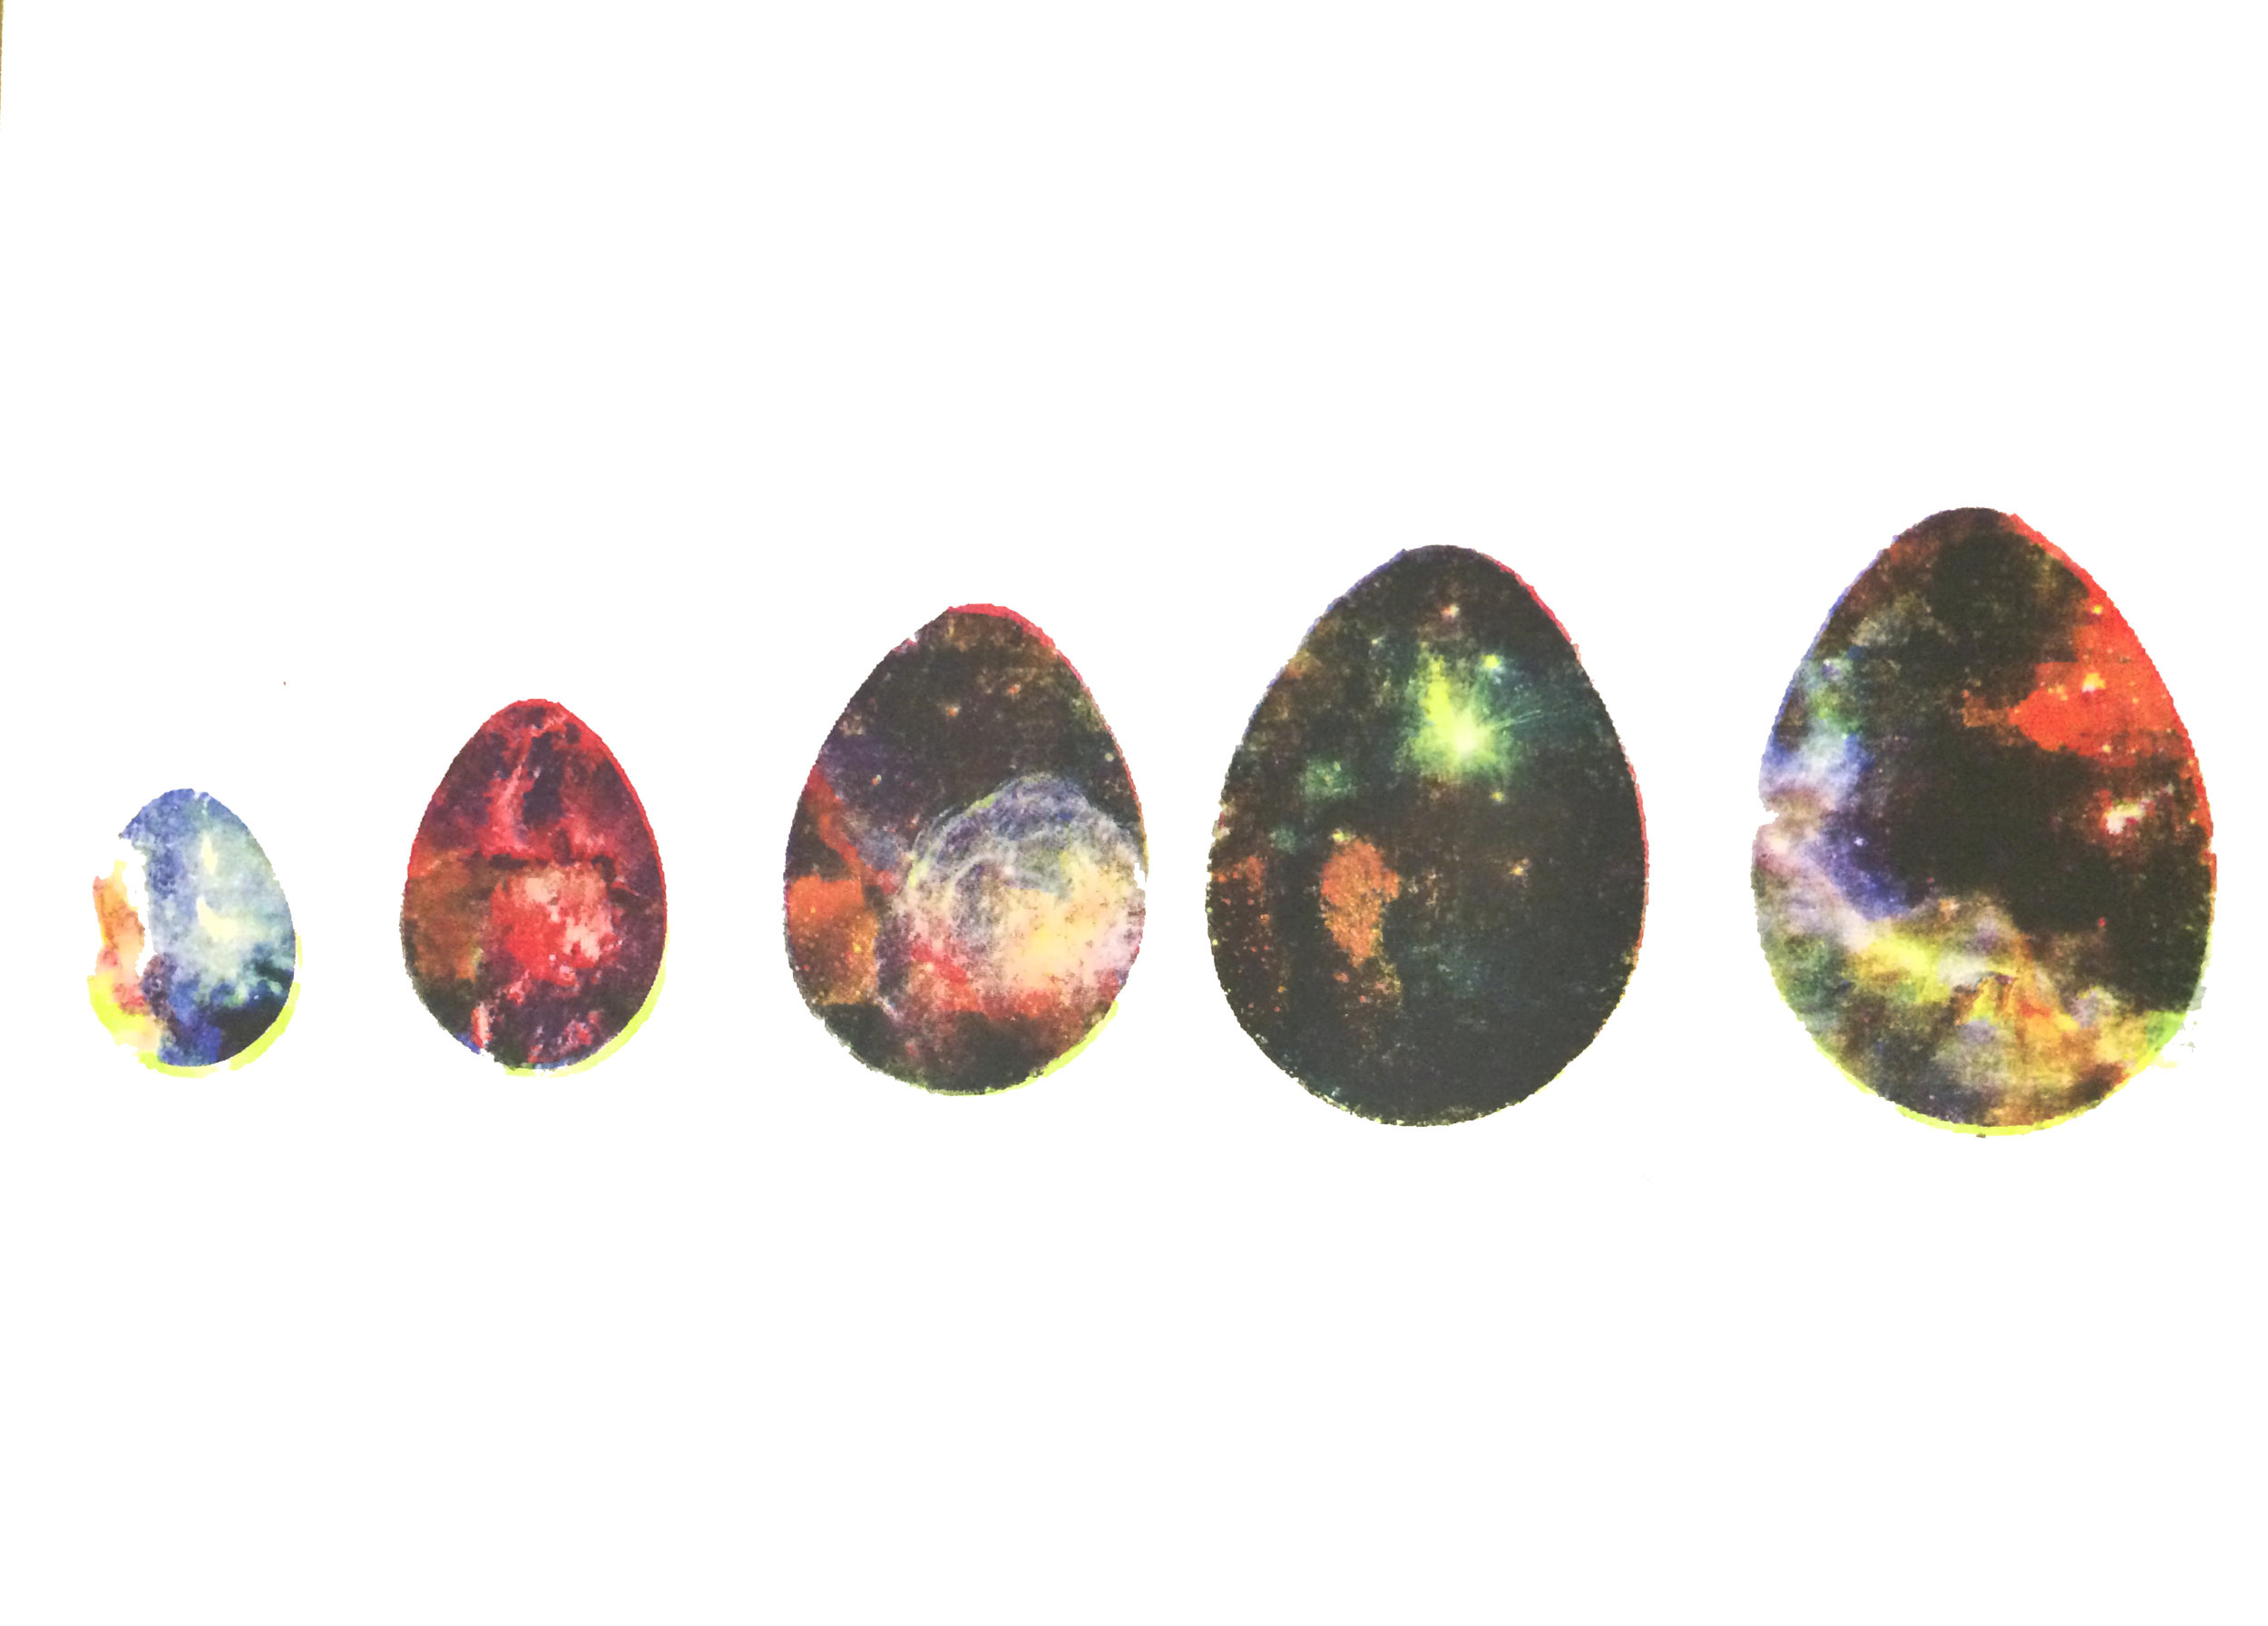 Here's the finished print for the growing eggs composition